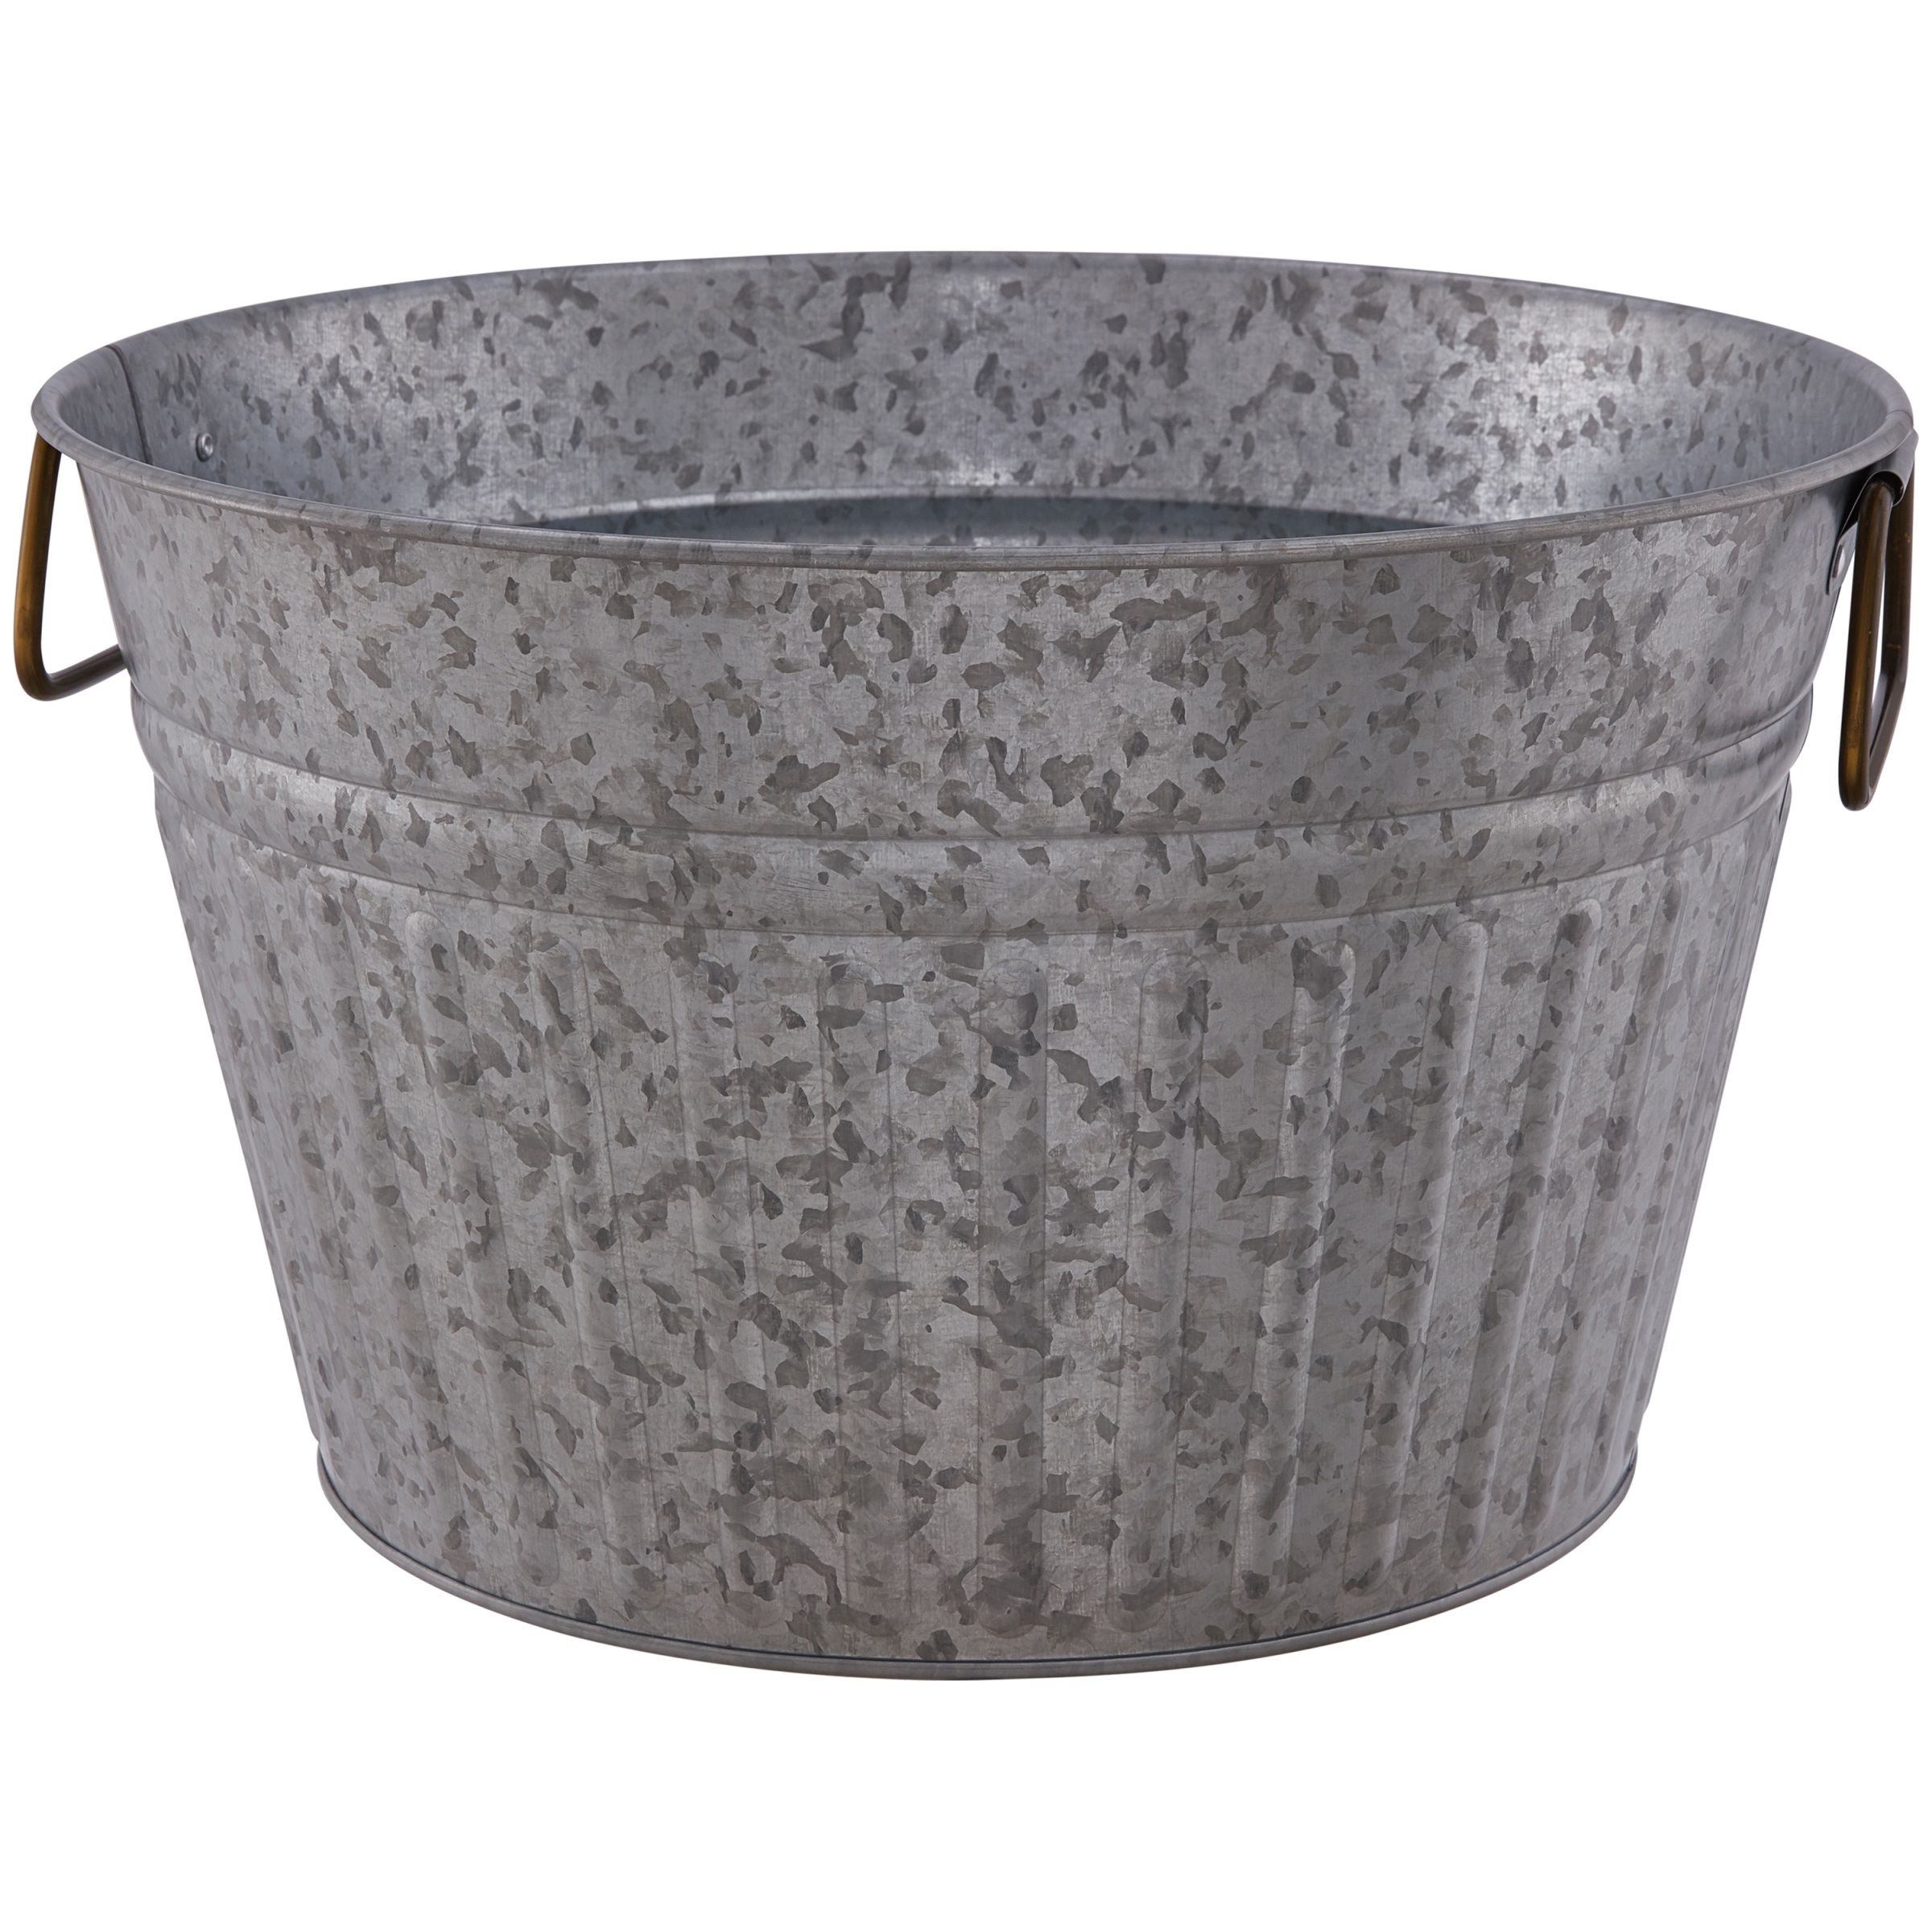 a39888df4d89605015f8ced8b88aa077 - Better Homes And Gardens Tin Tub